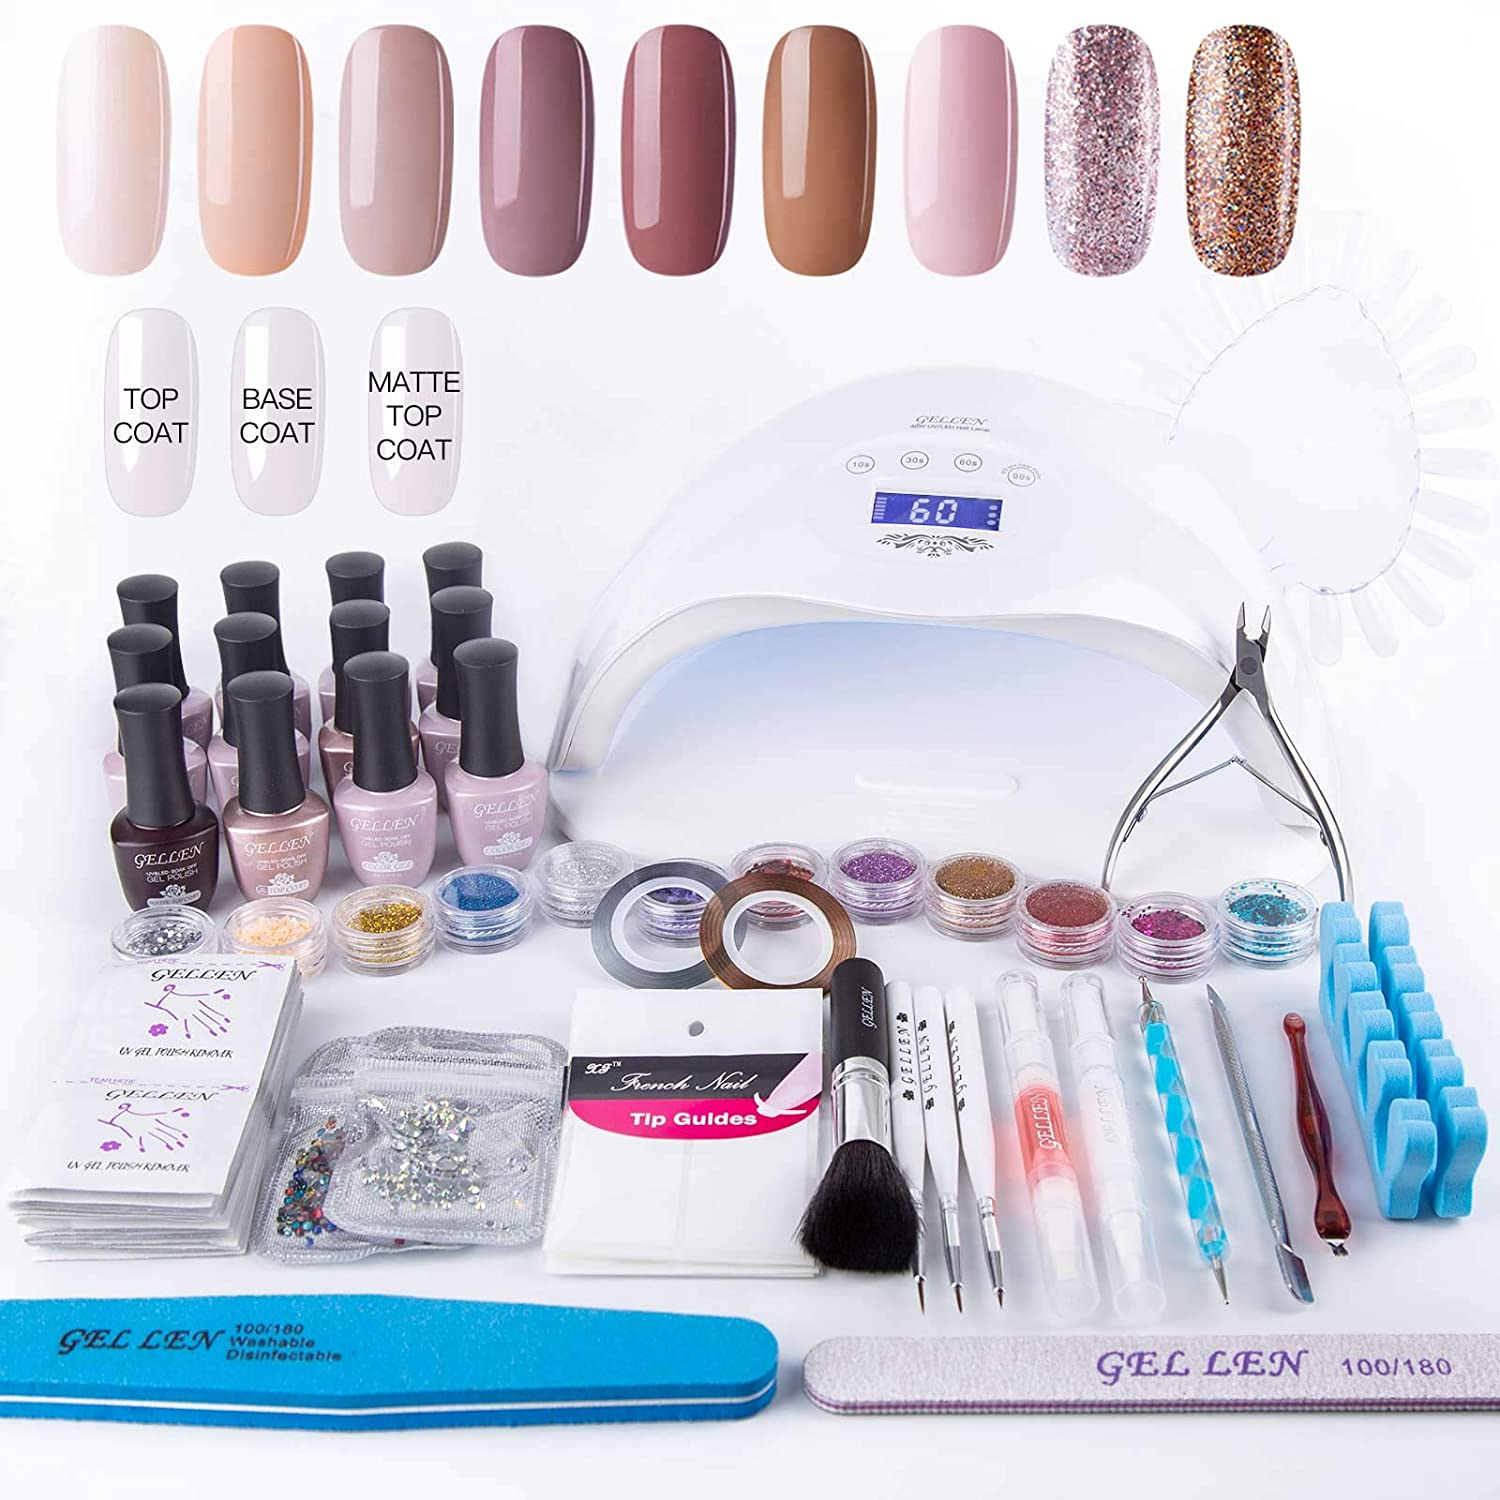 Gellen Home Nail Gel Starter Kit with Holiday Gift Bag 48W Nail Lamp, Selected 9 Colors Top Coat Base Coat, Luxury Manicure Tools Popular Nail Art Decorations #1